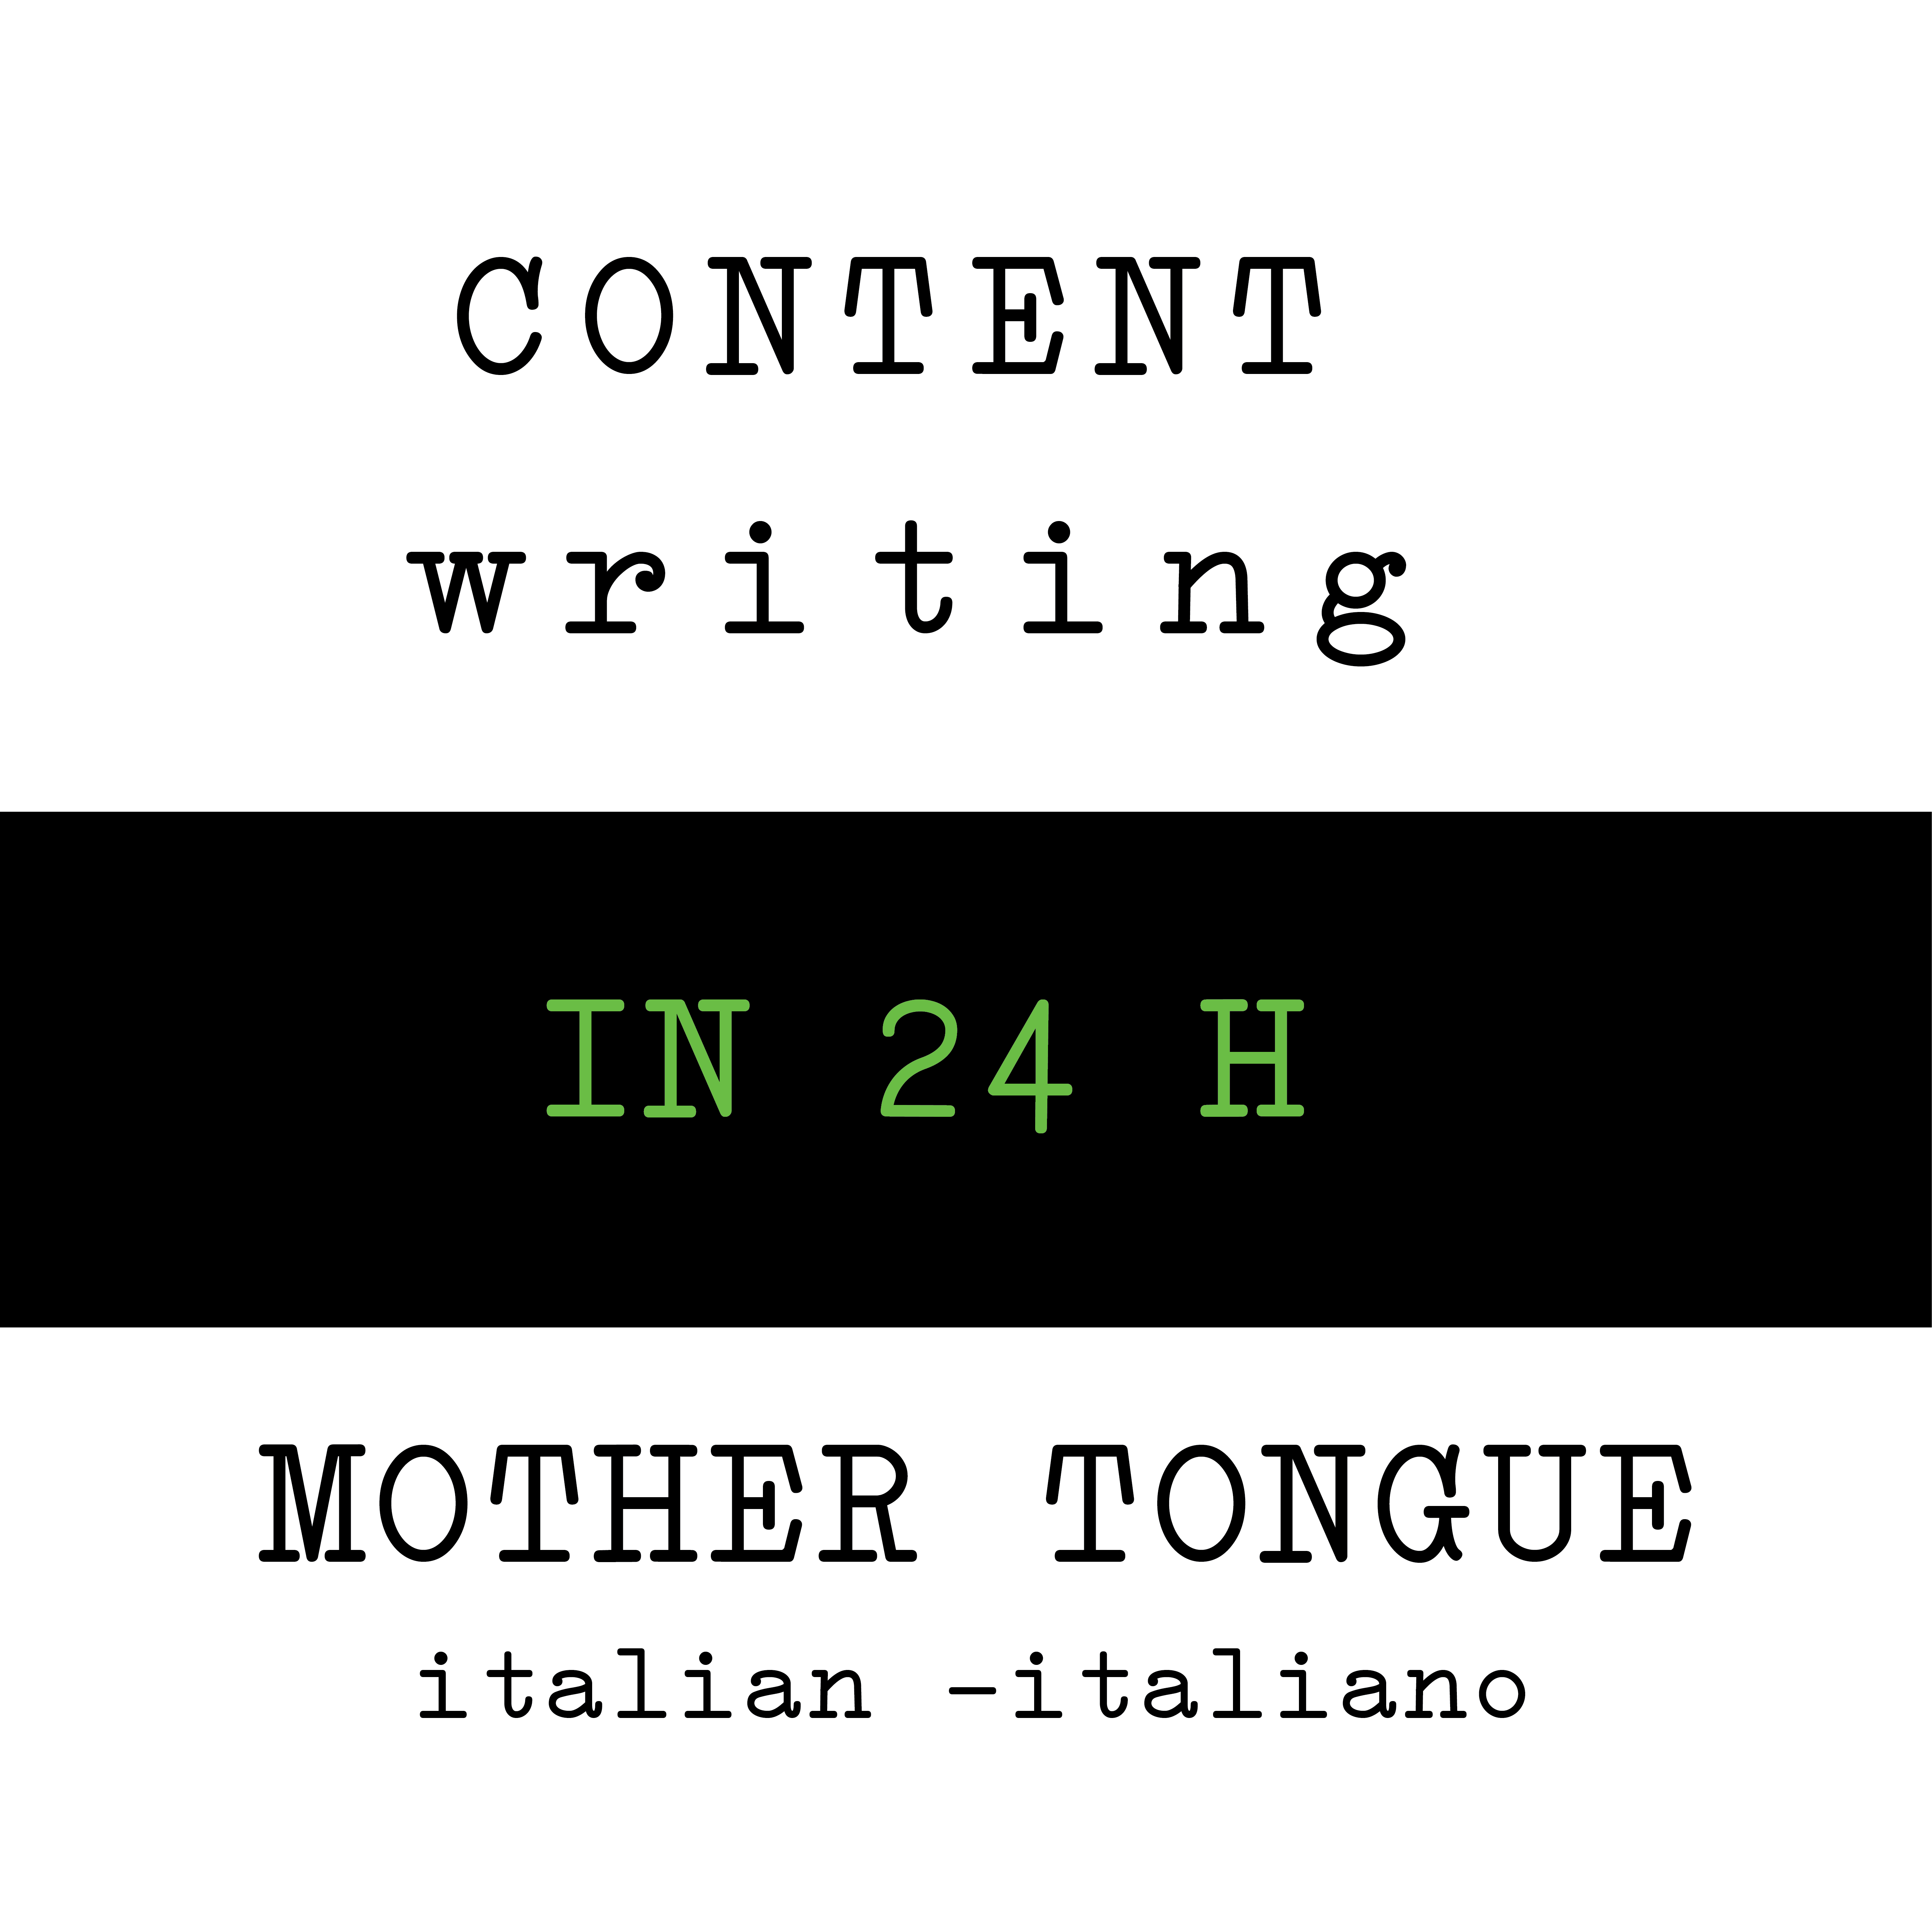 Italian Writing Content for web social blog in 24h